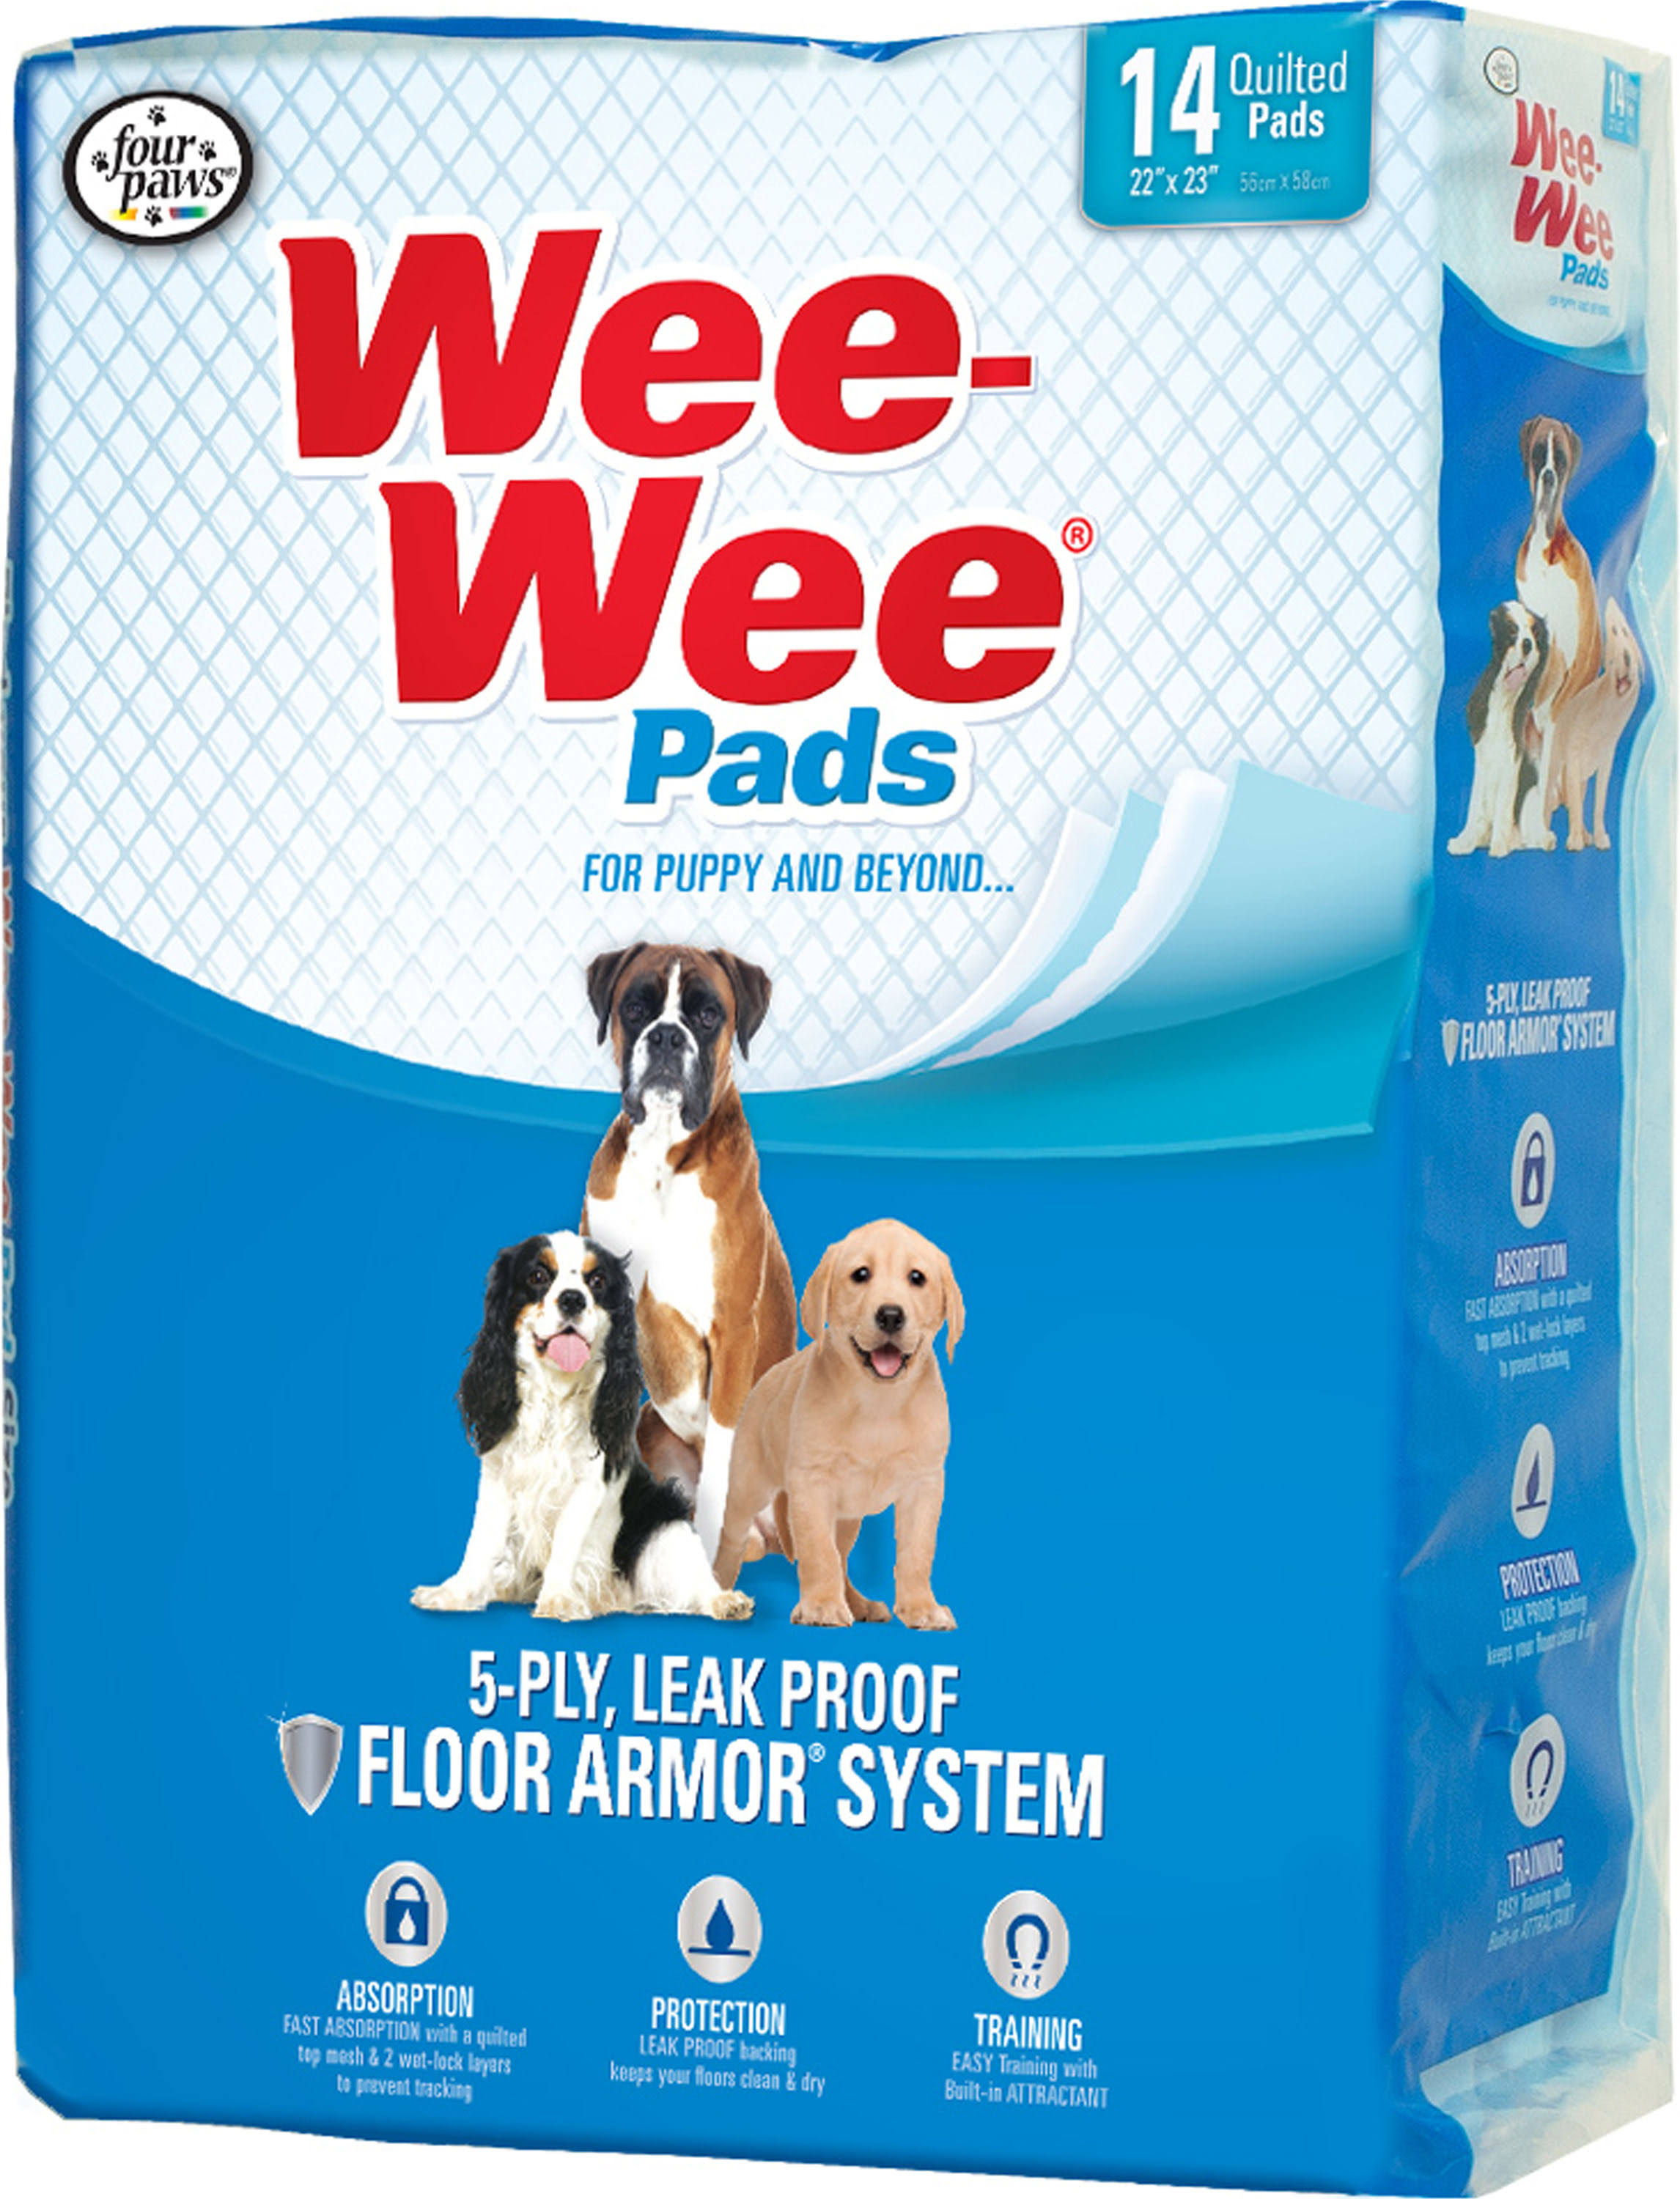 Four Paws Wee-Wee Standard Dog Housebreaking Pads - 7 Pack